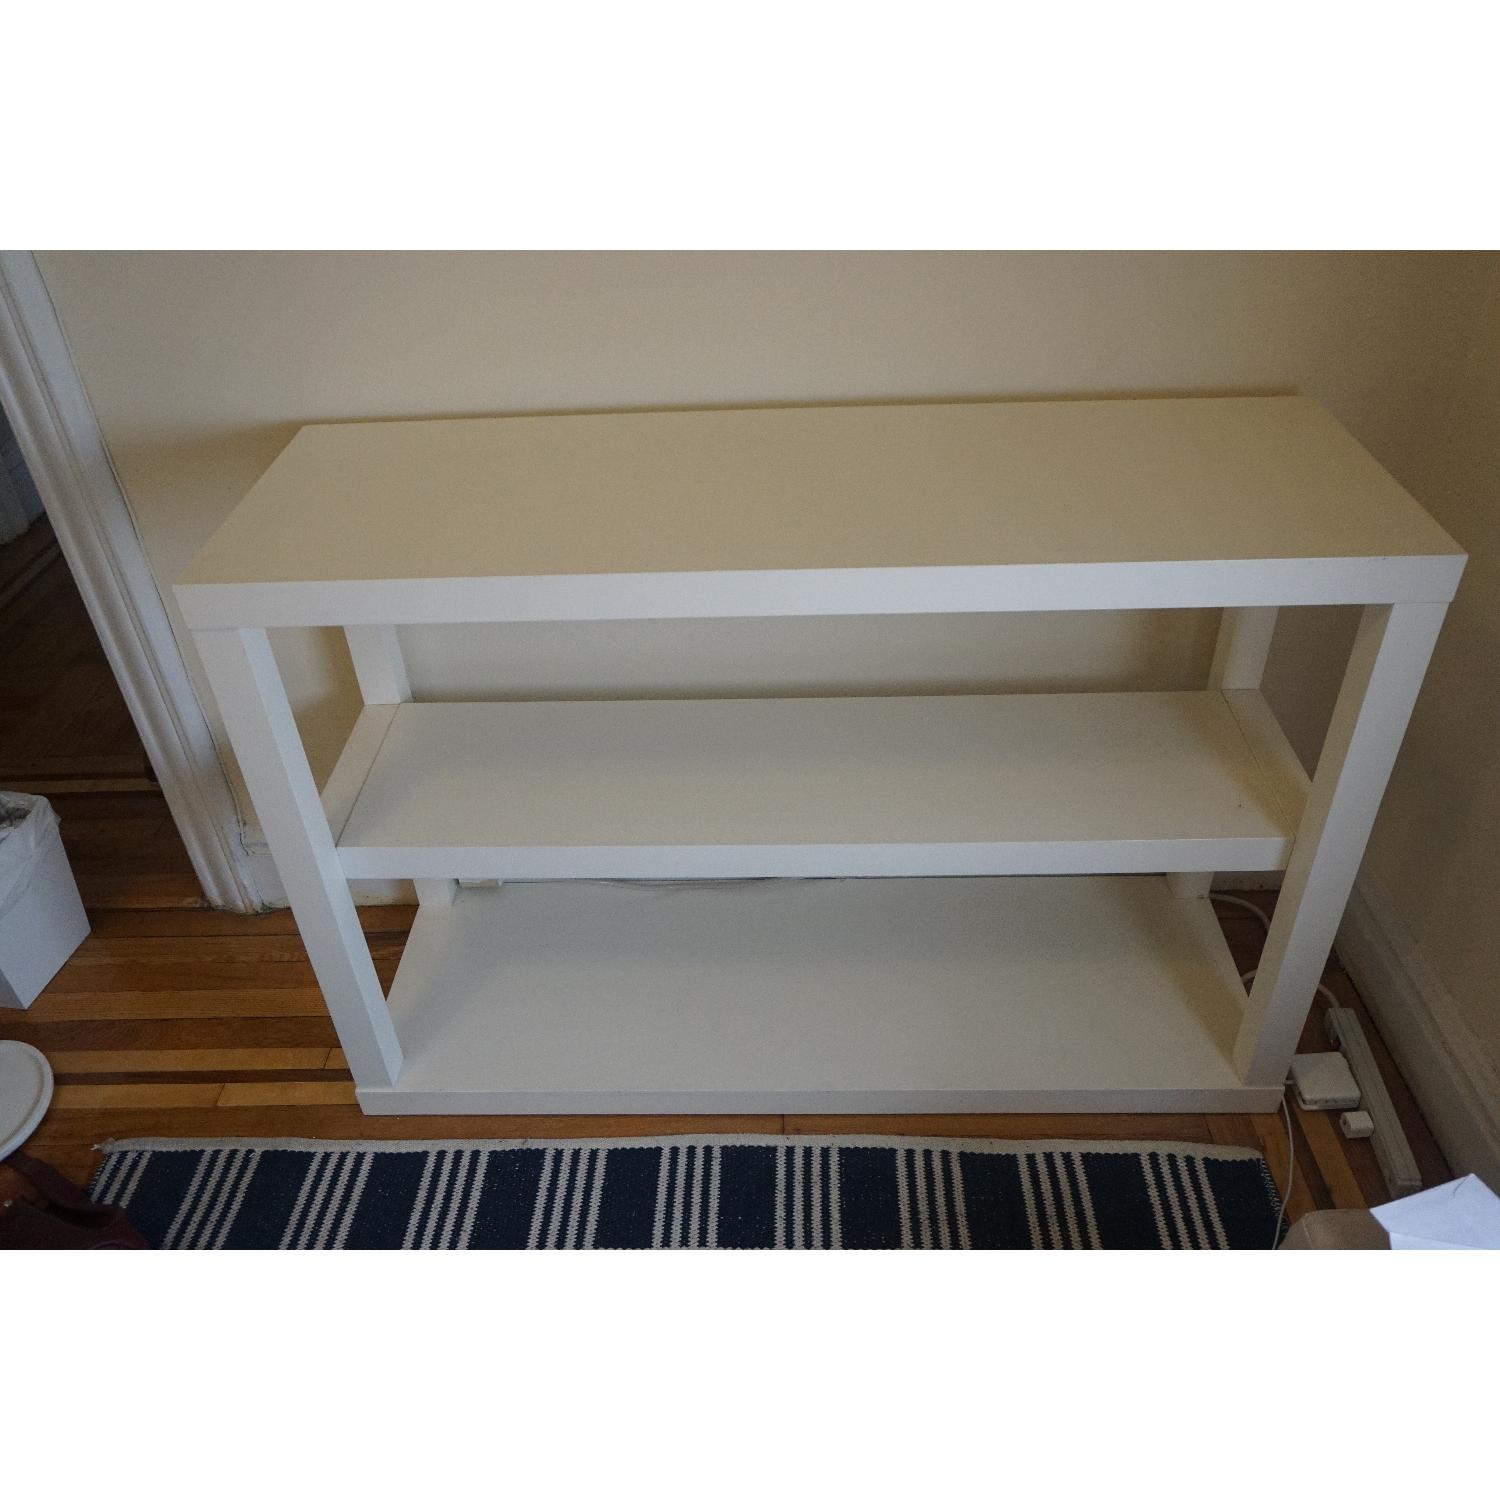 West Elm Parsons Low Bookcase in White - image-1